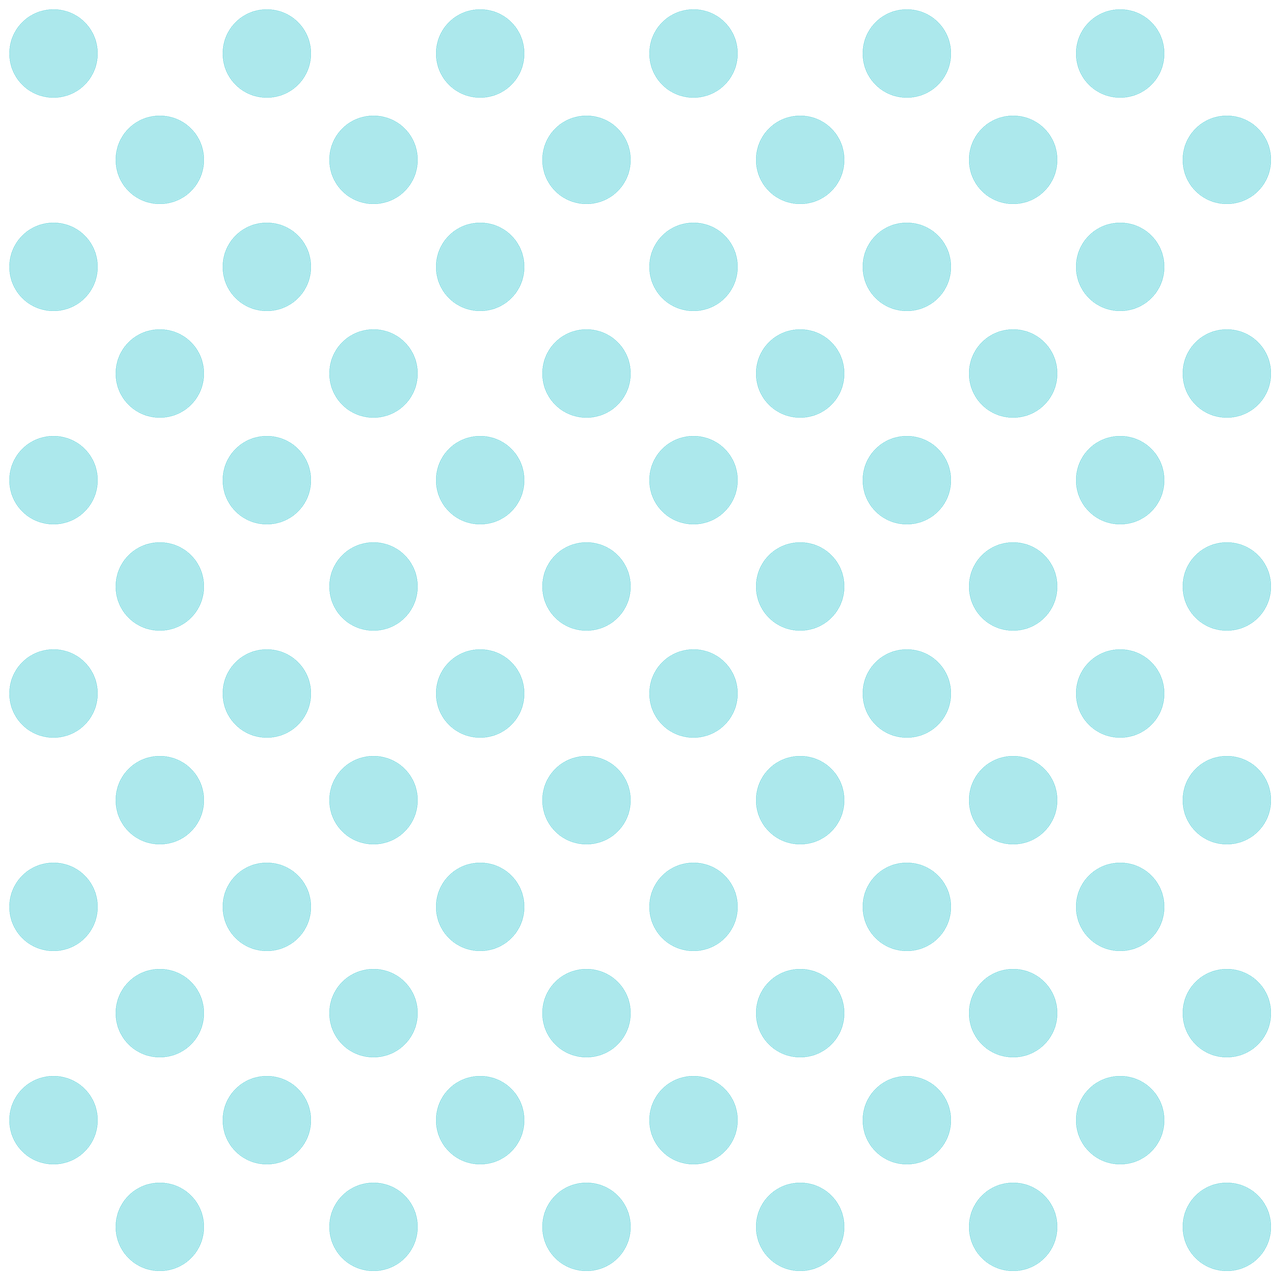 Blue Dots Craft Paper Scrapbooking Download HD PNG PNG Image